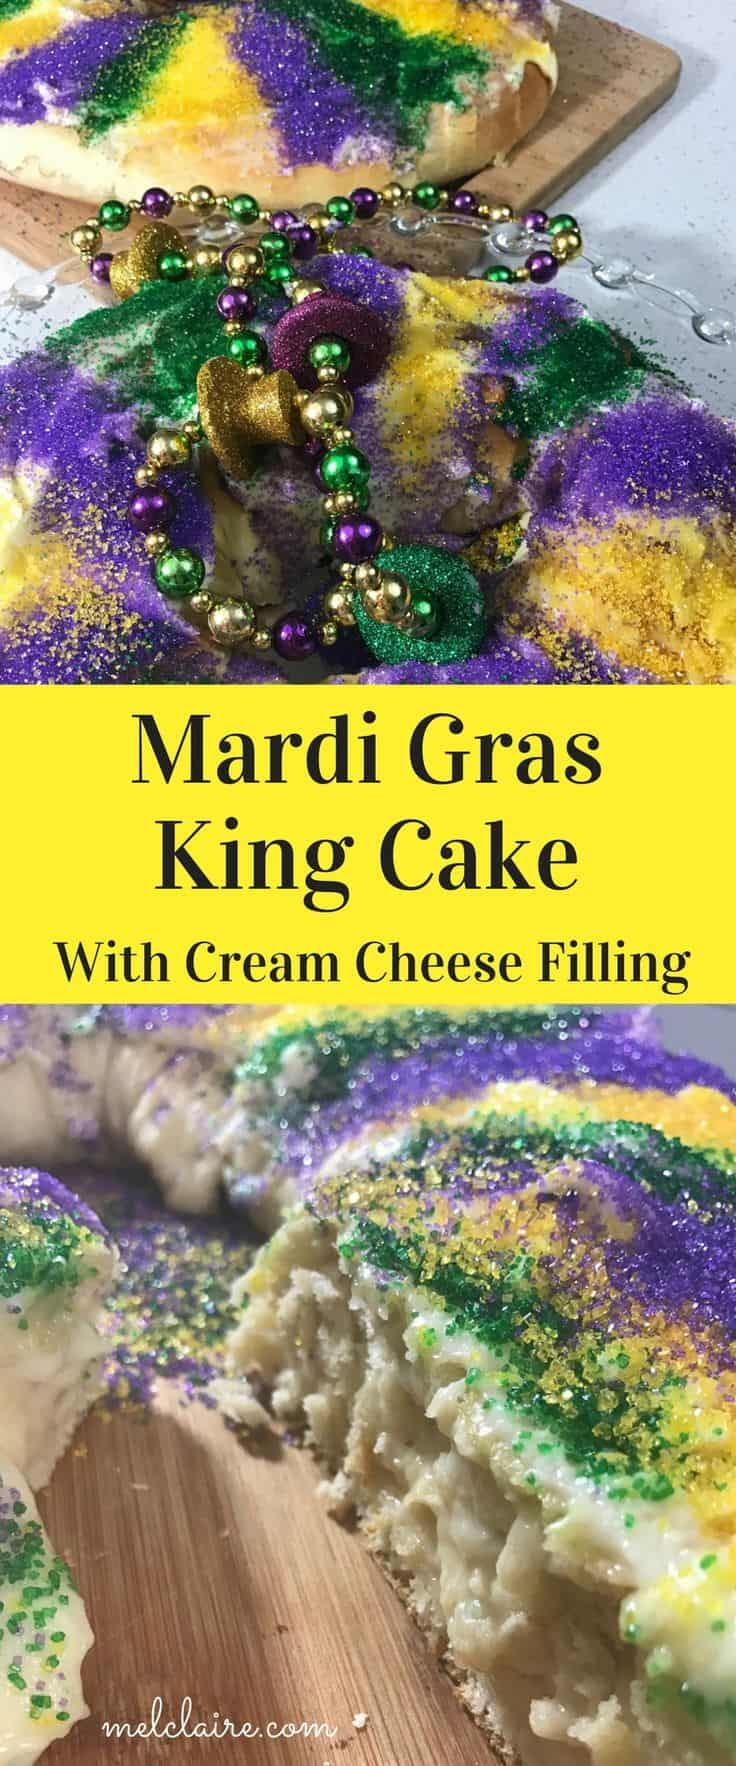 Mardi gras king cake with a cream cheese filing